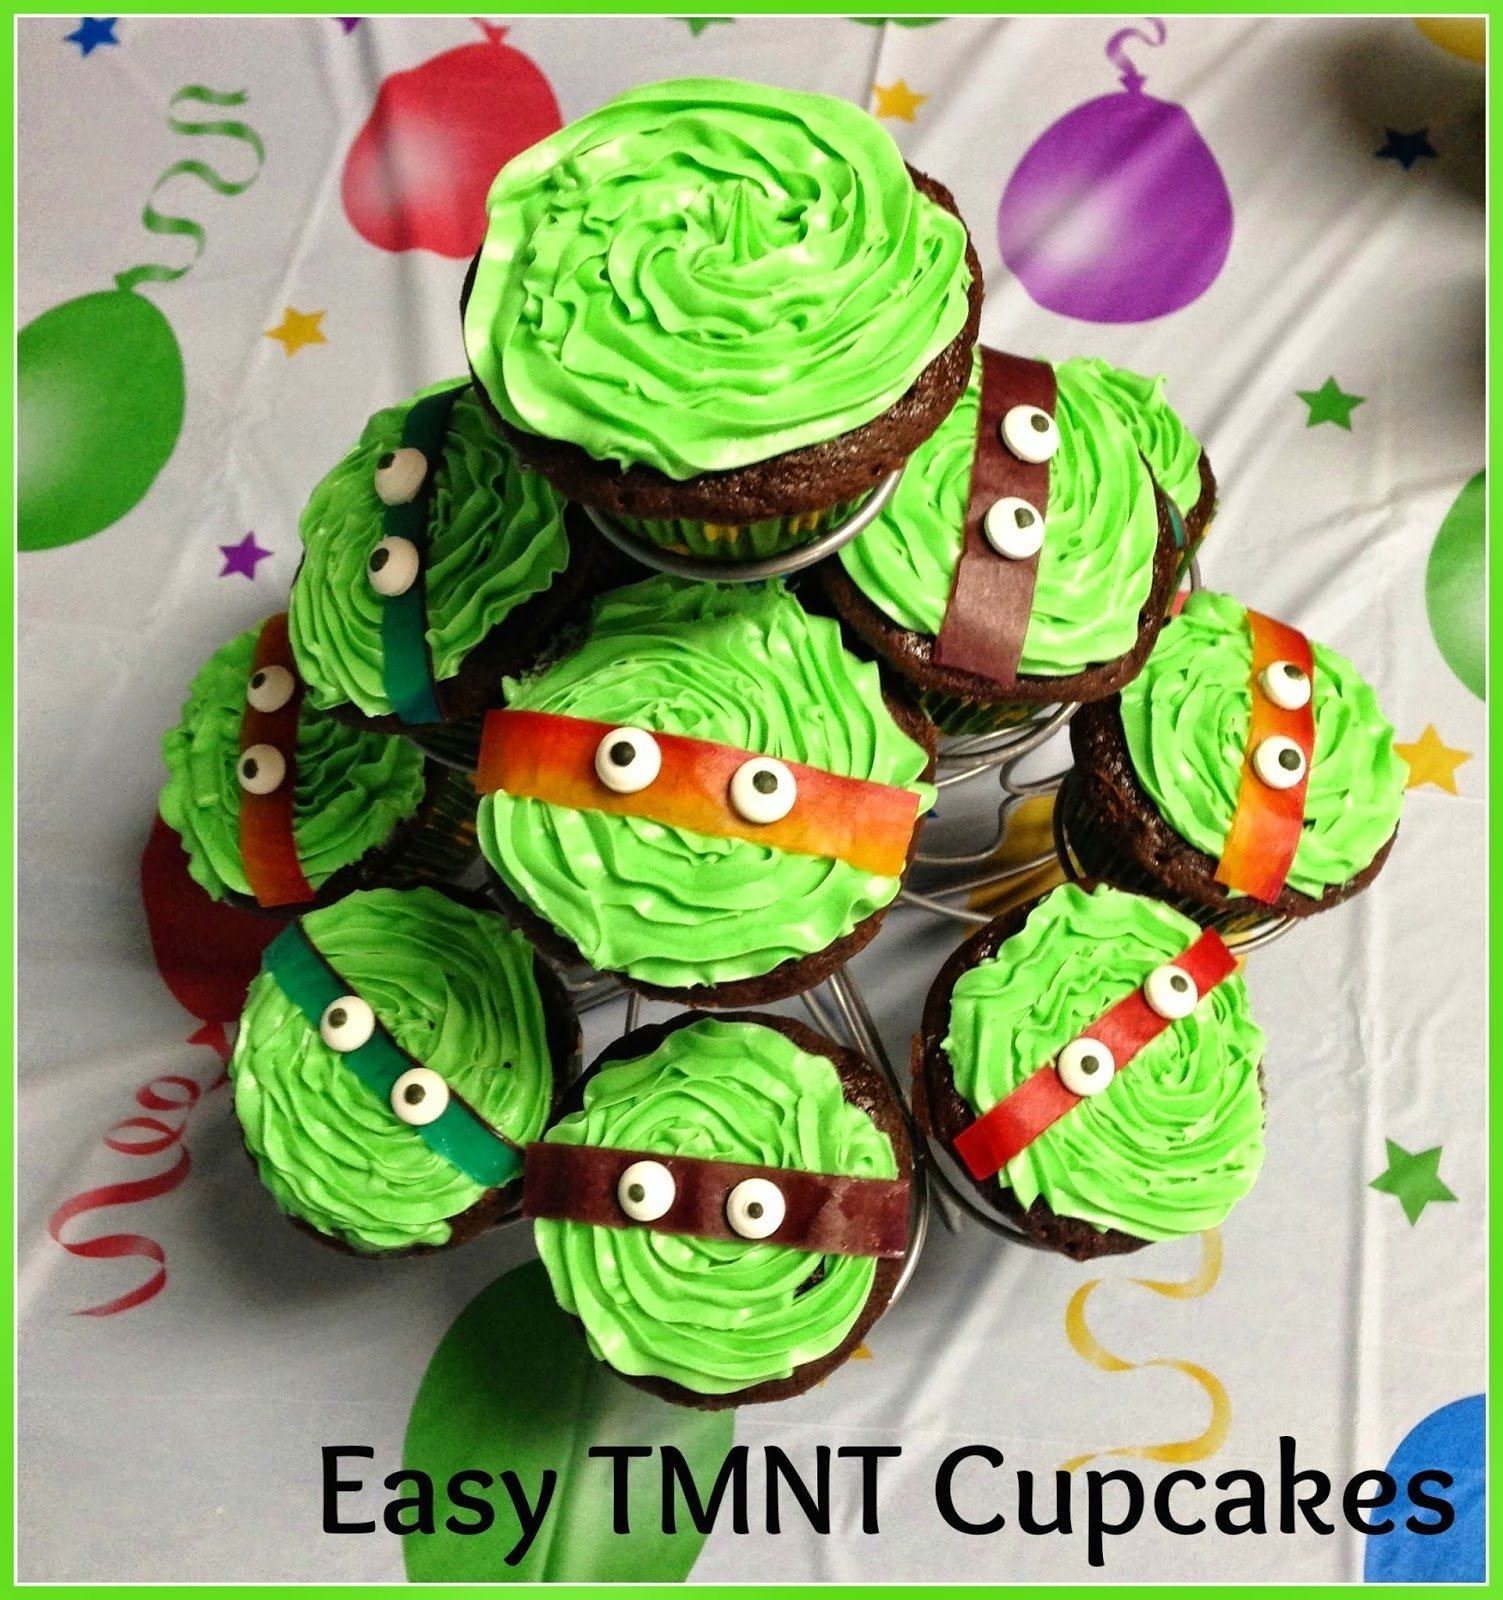 10 Attractive Teenage Mutant Ninja Turtles Cupcake Ideas bentolunch whats for lunch at our house how to make easy 2020